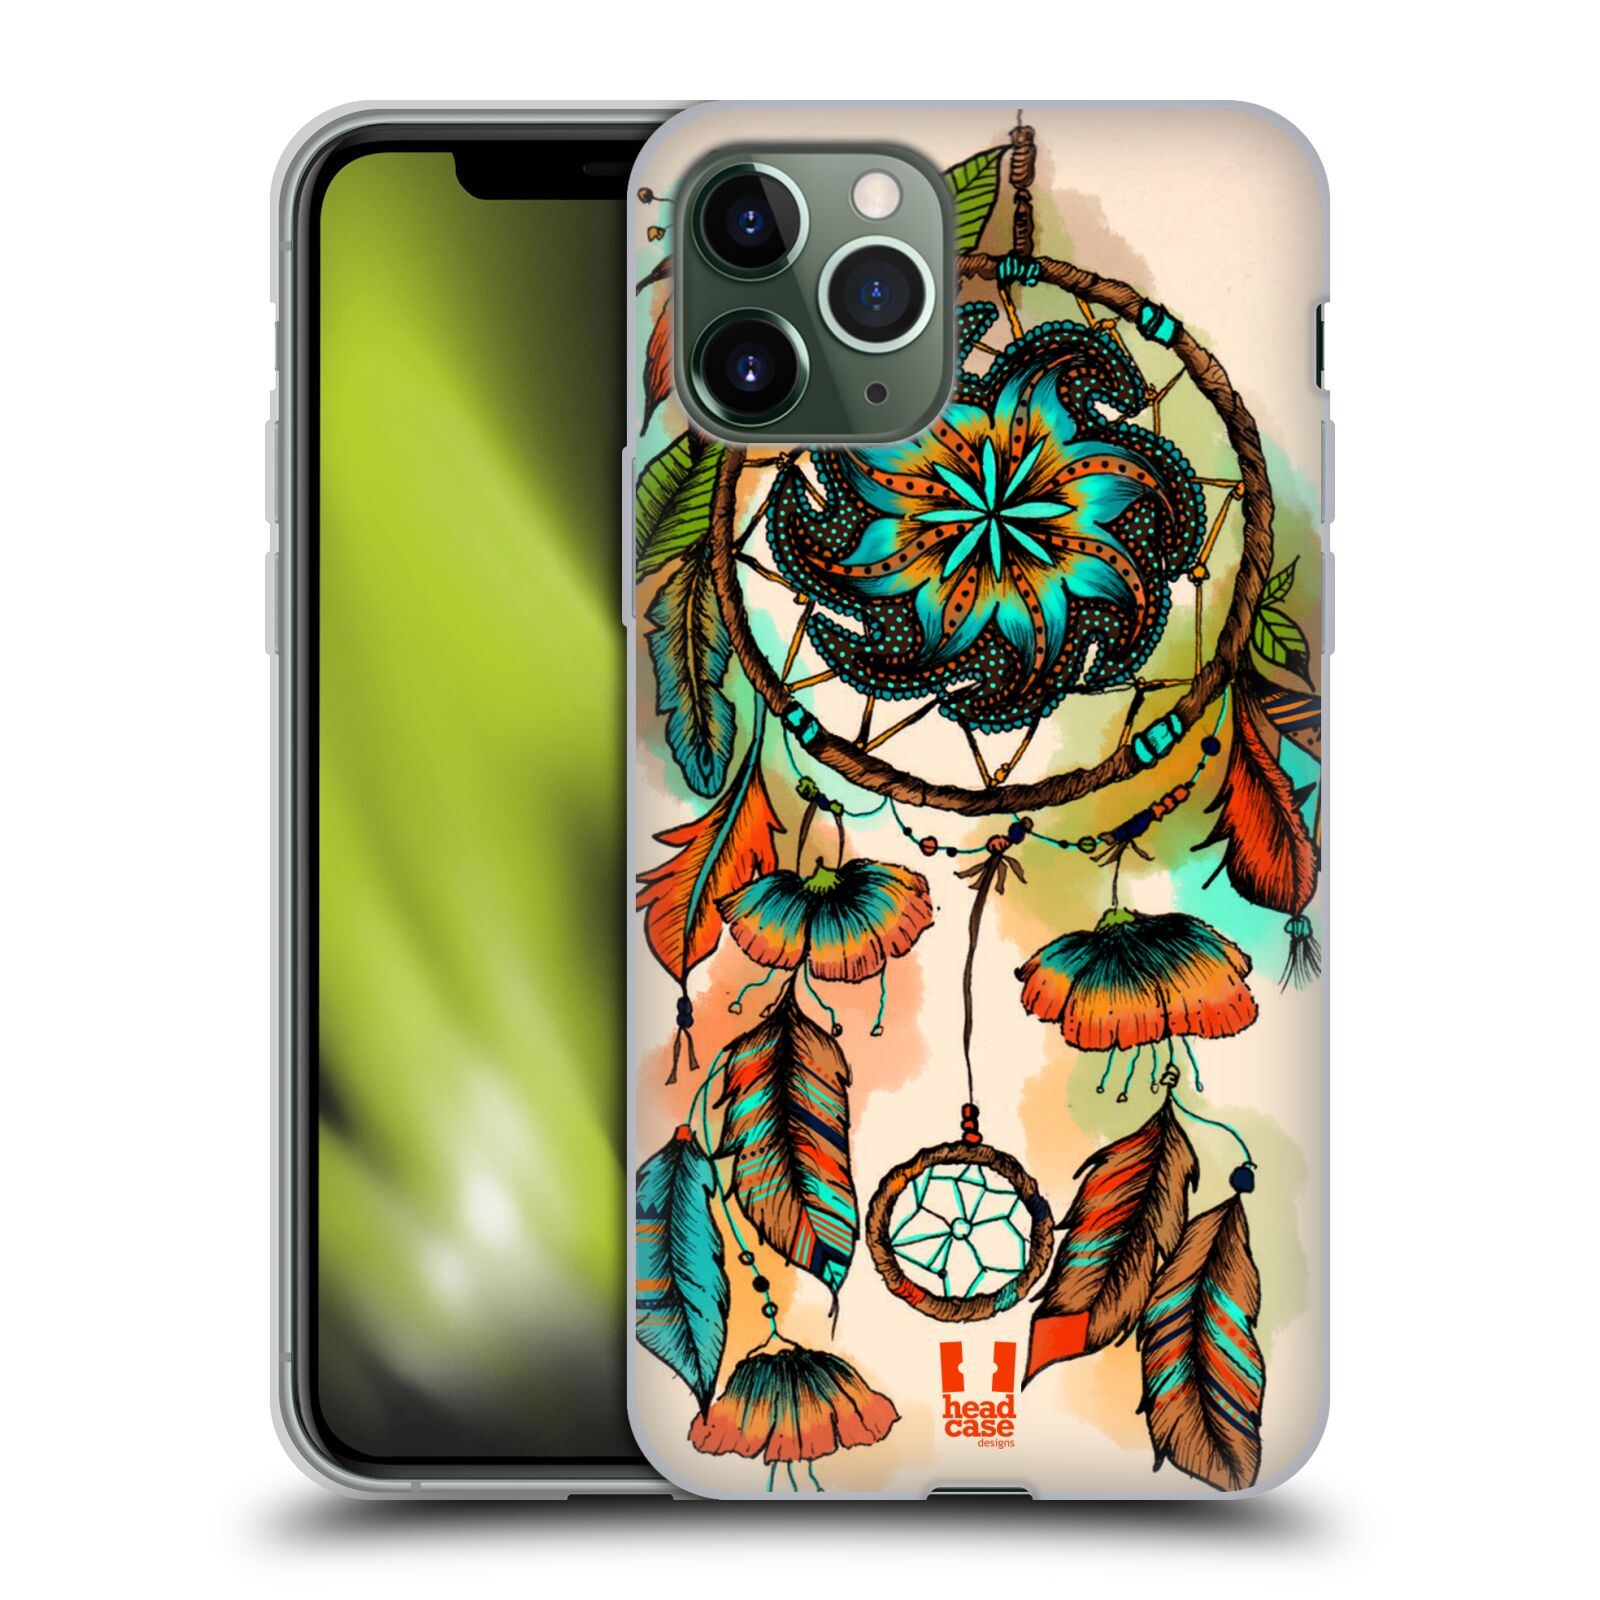 Pouzdra iPhone 8 plus Coach - Silikonové pouzdro na mobil Apple iPhone 11 Pro - Head Case - BLOOM APRICOT